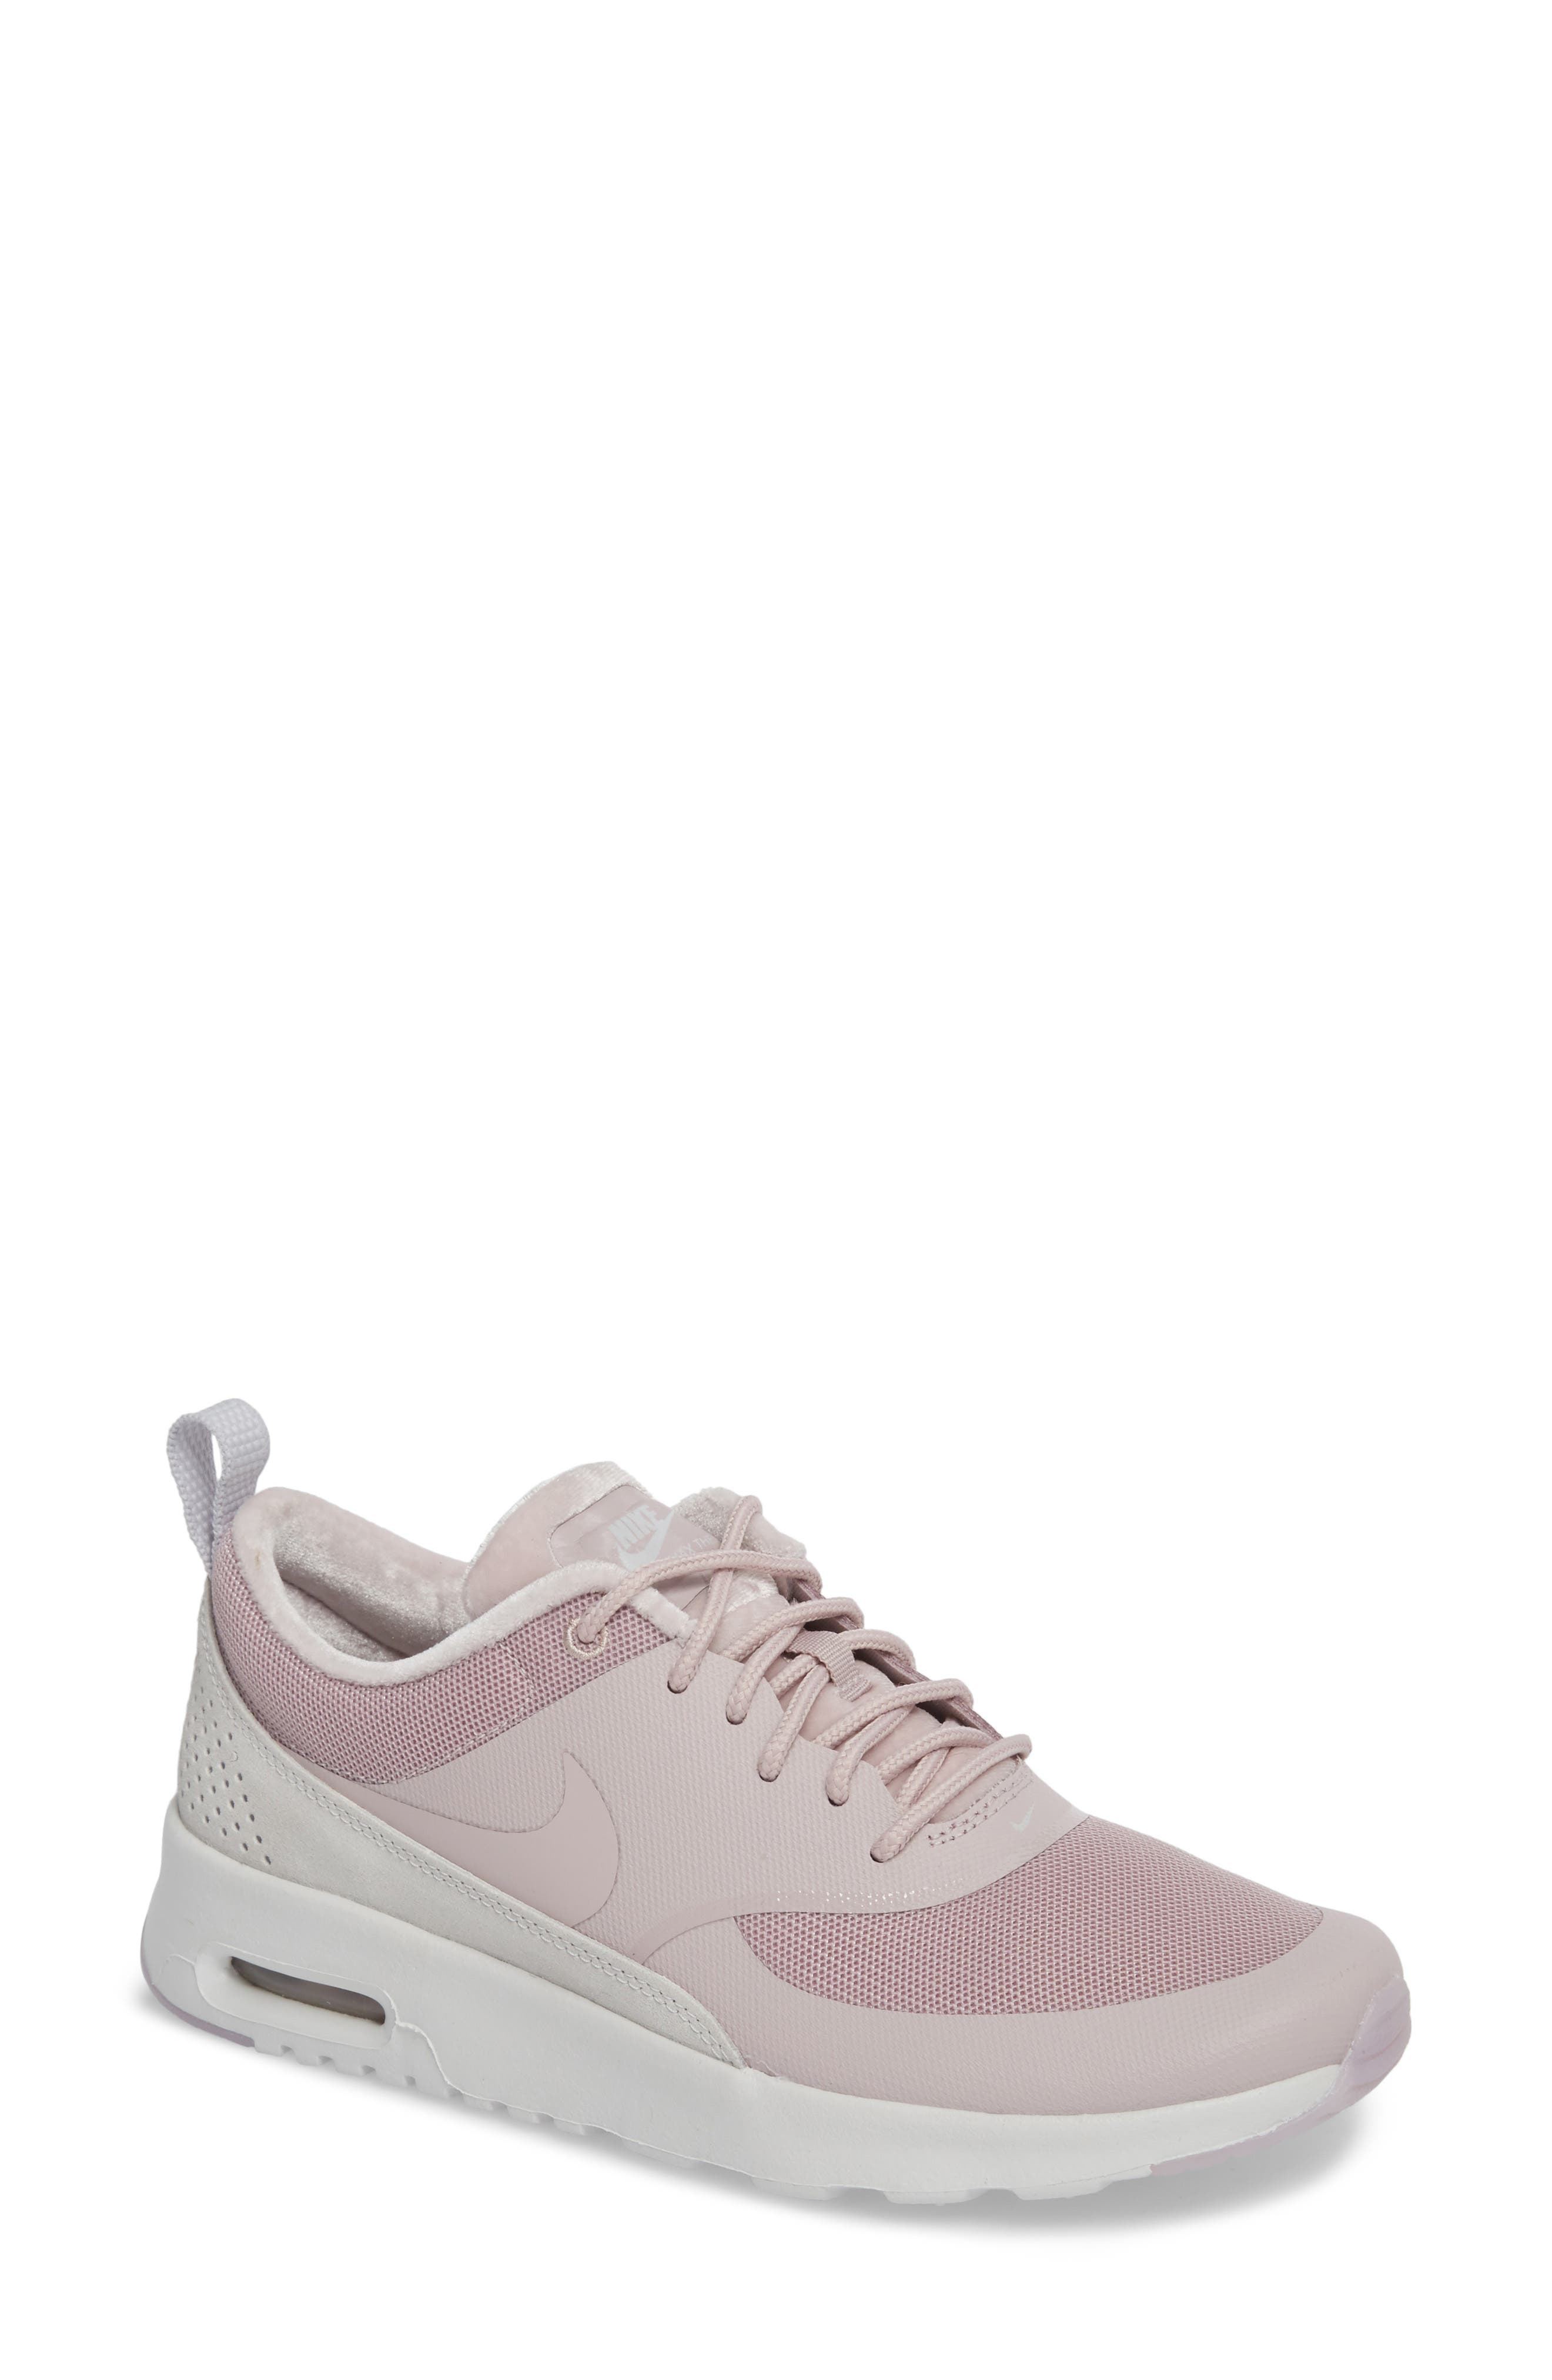 Air Max Thea LX Sneaker,                         Main,                         color, Particle Rose/ Particle Rose